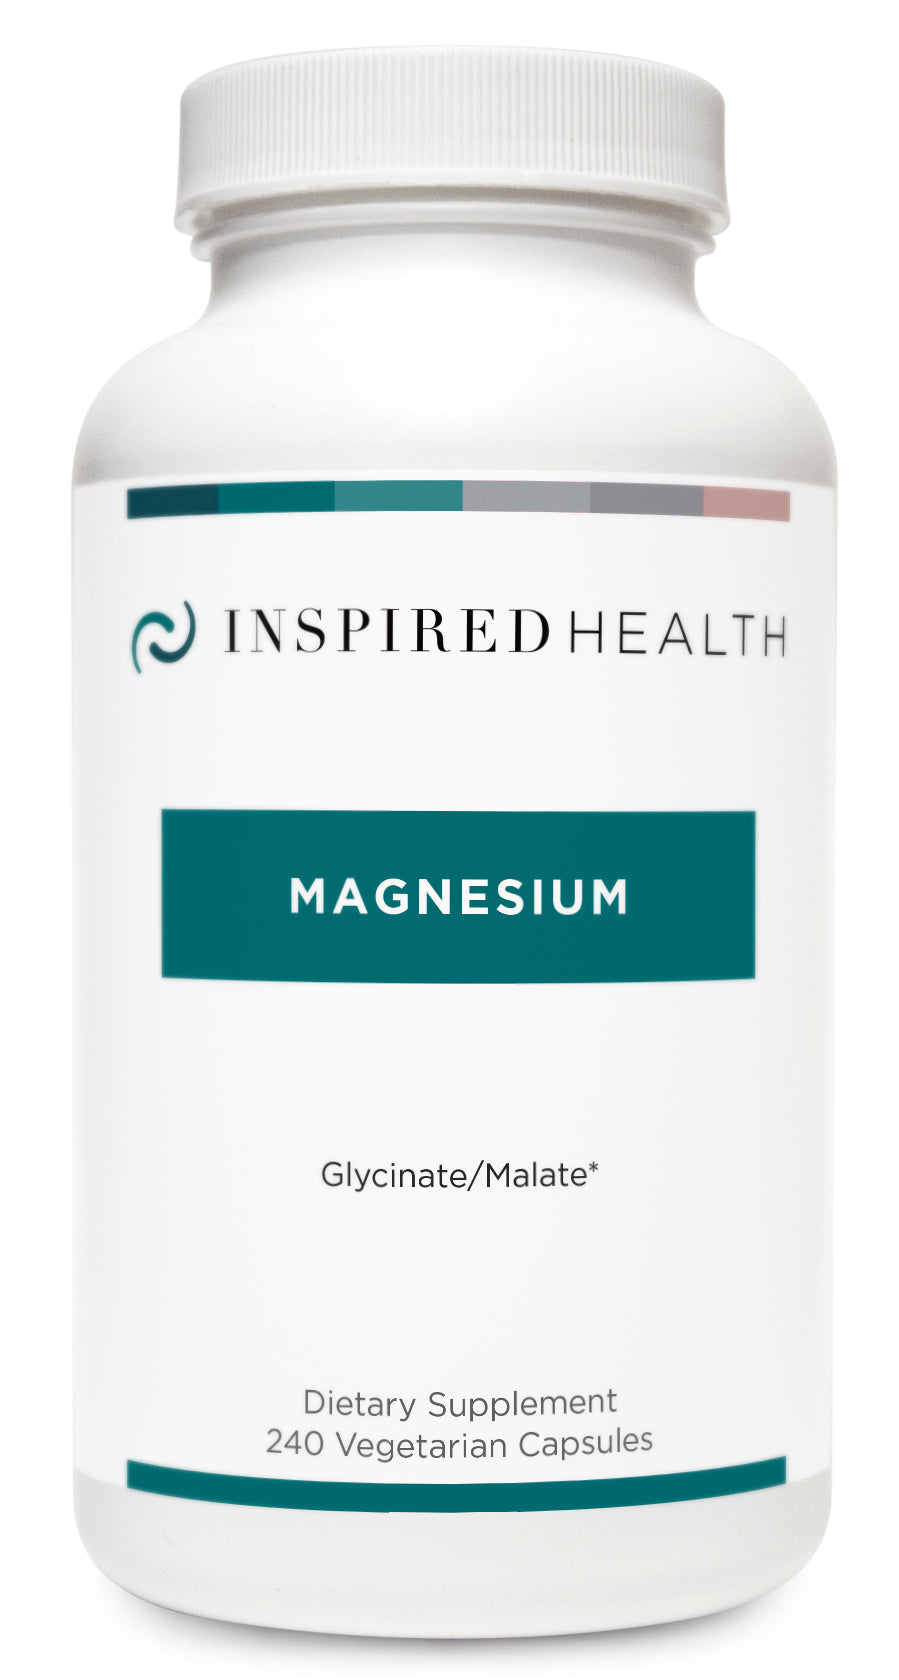 Magnesium 120 caps - Inspired Health Apothecary - Constipation, Anxiety, Insomnia, Sleep Support